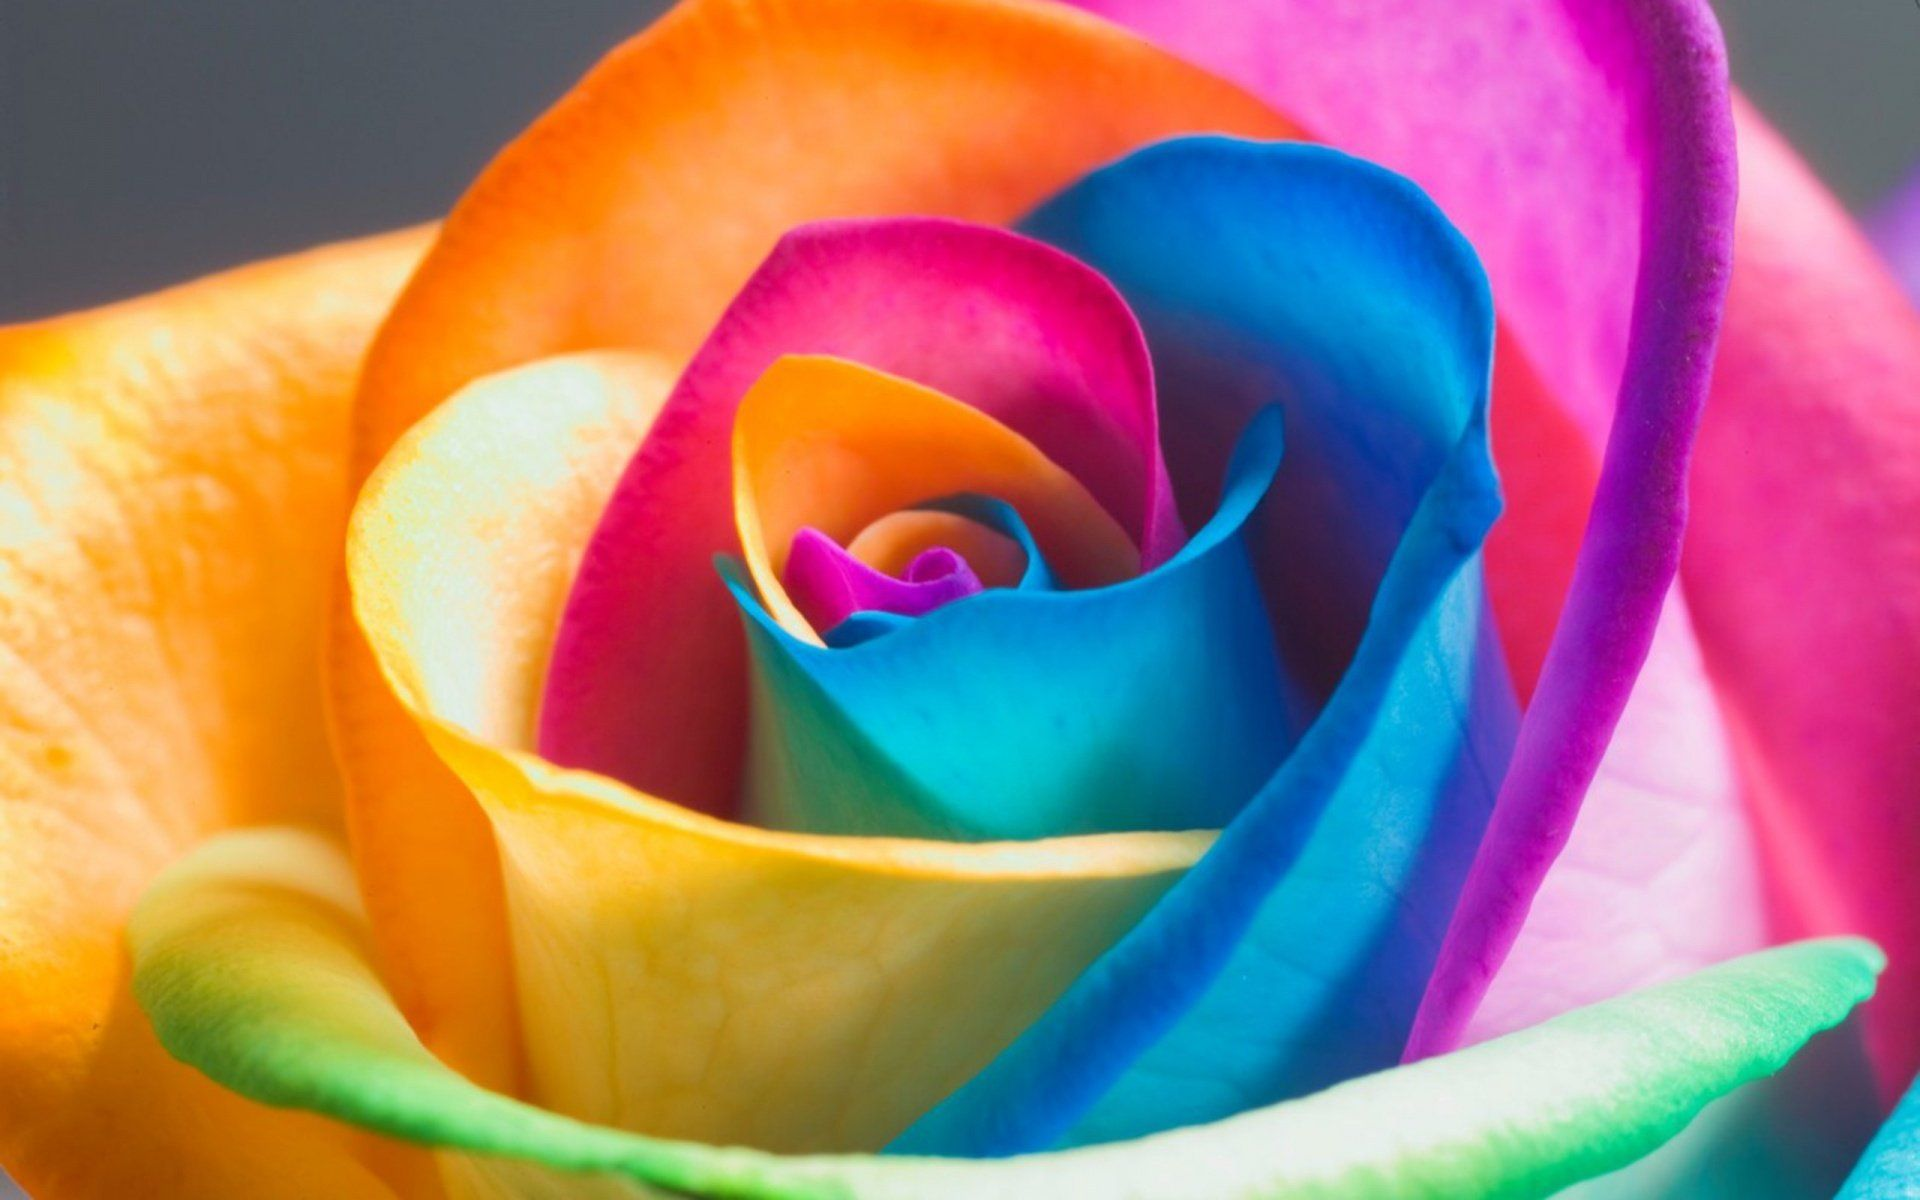 Cool Flower Wallpaper: Images for Gt Cool Flowers Wallpaper 1920x1200px | more flowers | Rainbow ...